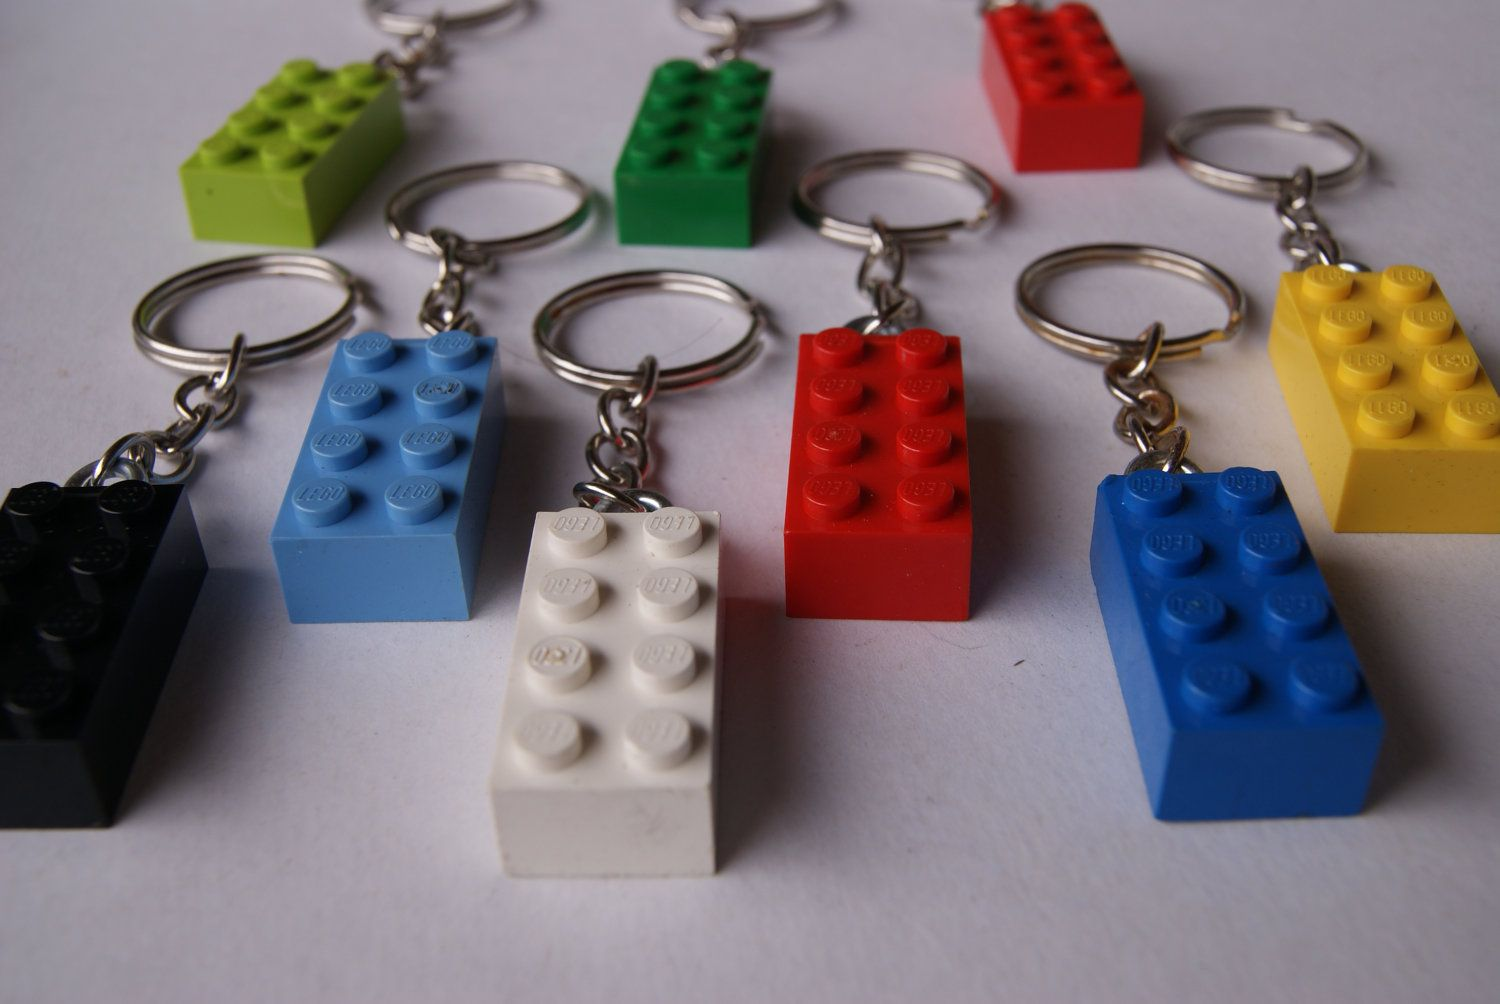 lego keychain - blue/yellow/red/green/black/white - upcycled